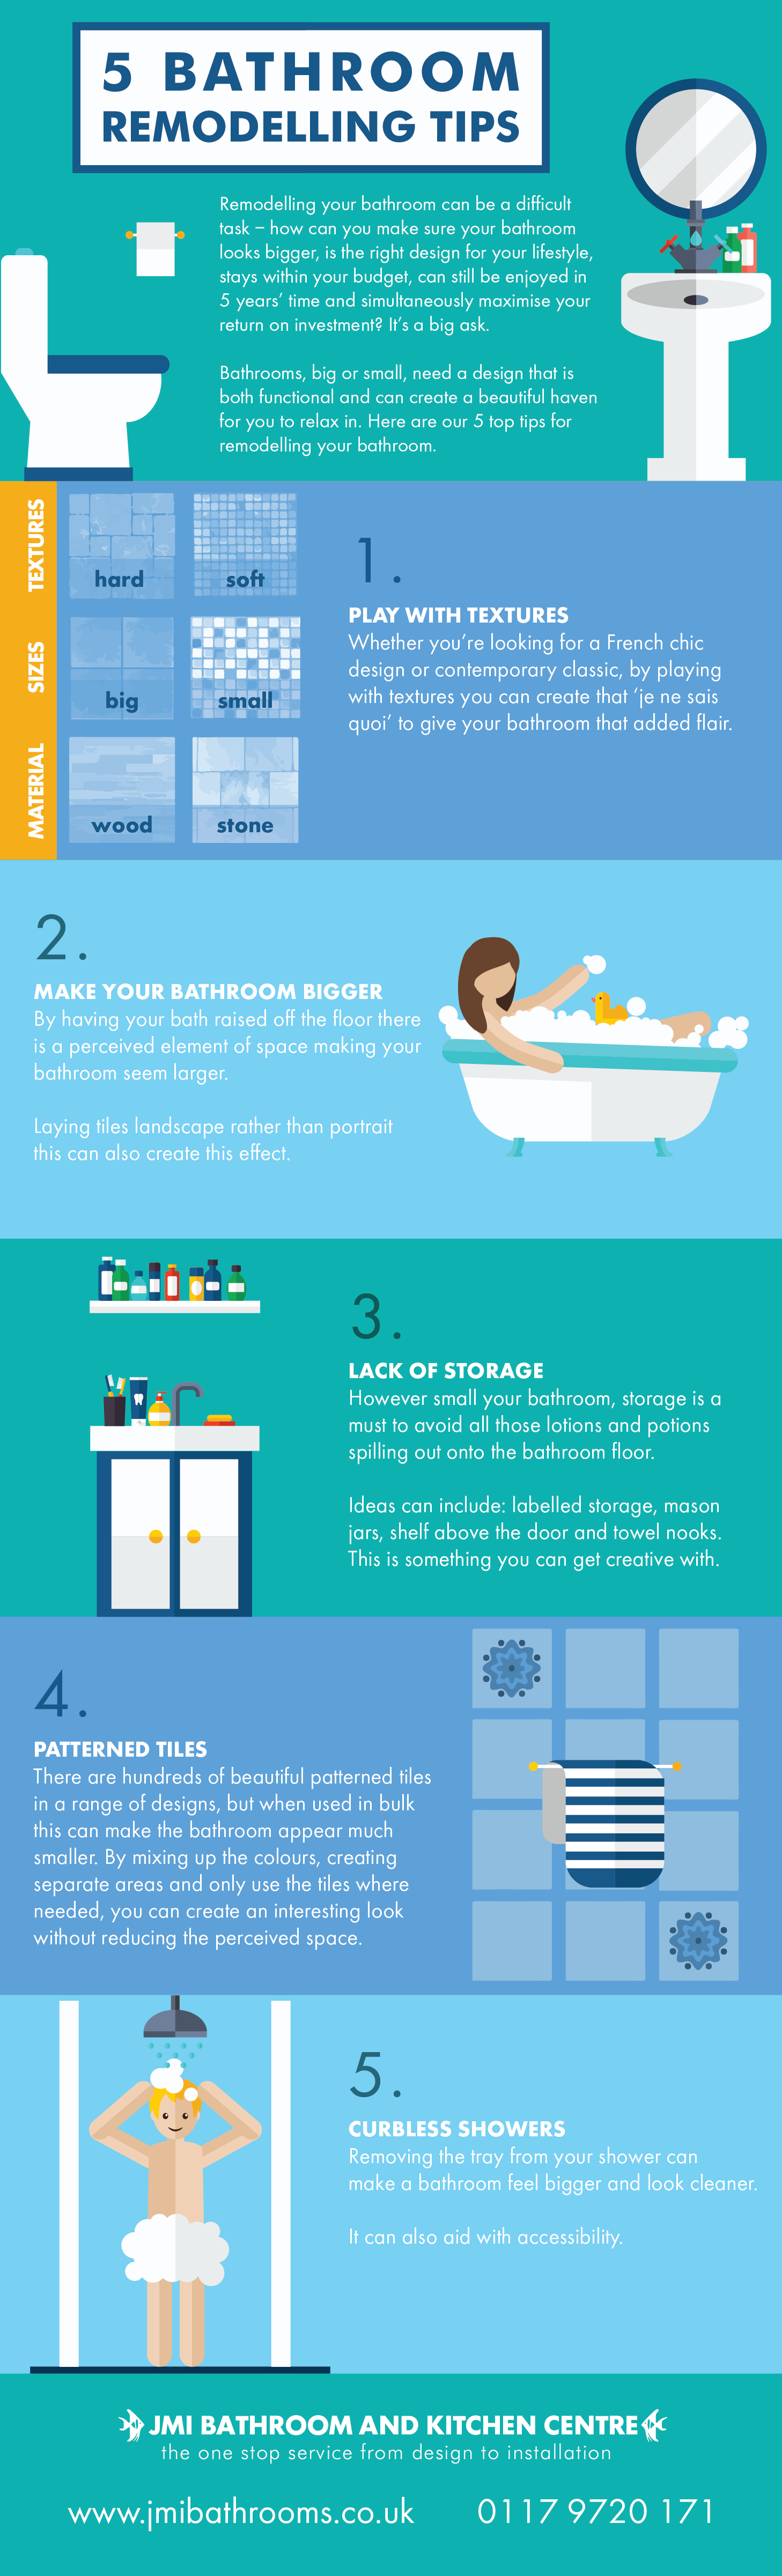 5 design tips for your bathroom